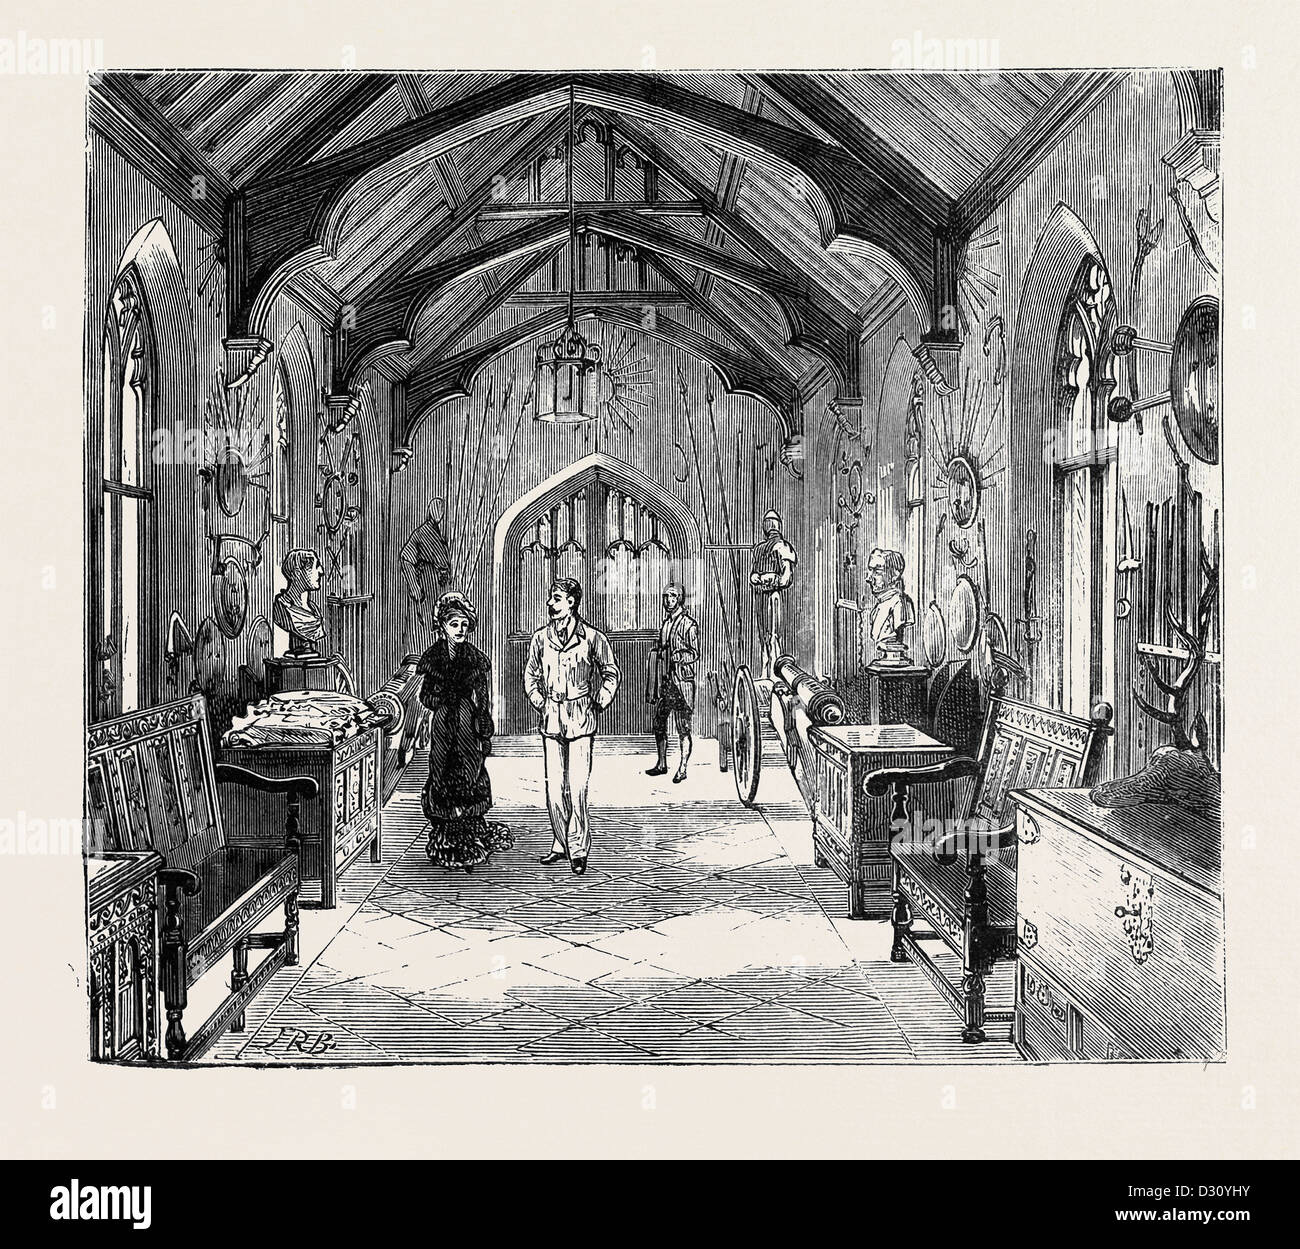 THE EMPRESS OF AUSTRIA AT COMBERMERE, CHESHIRE: THE ARMOURY IN THE ENTRANCE HALL - Stock Image